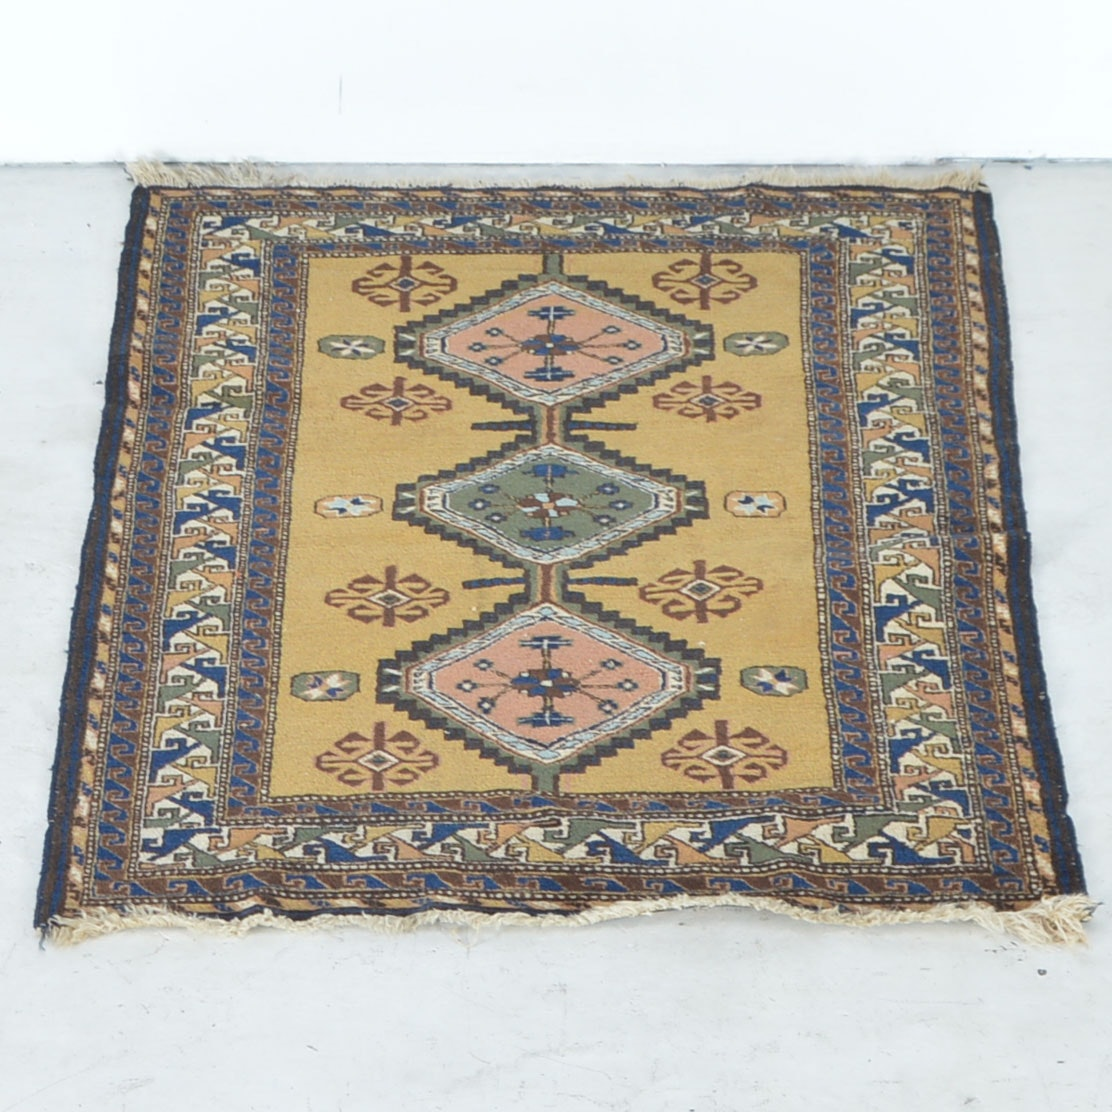 Semi-Antique Handwoven Kazak Shirvan Area Rug